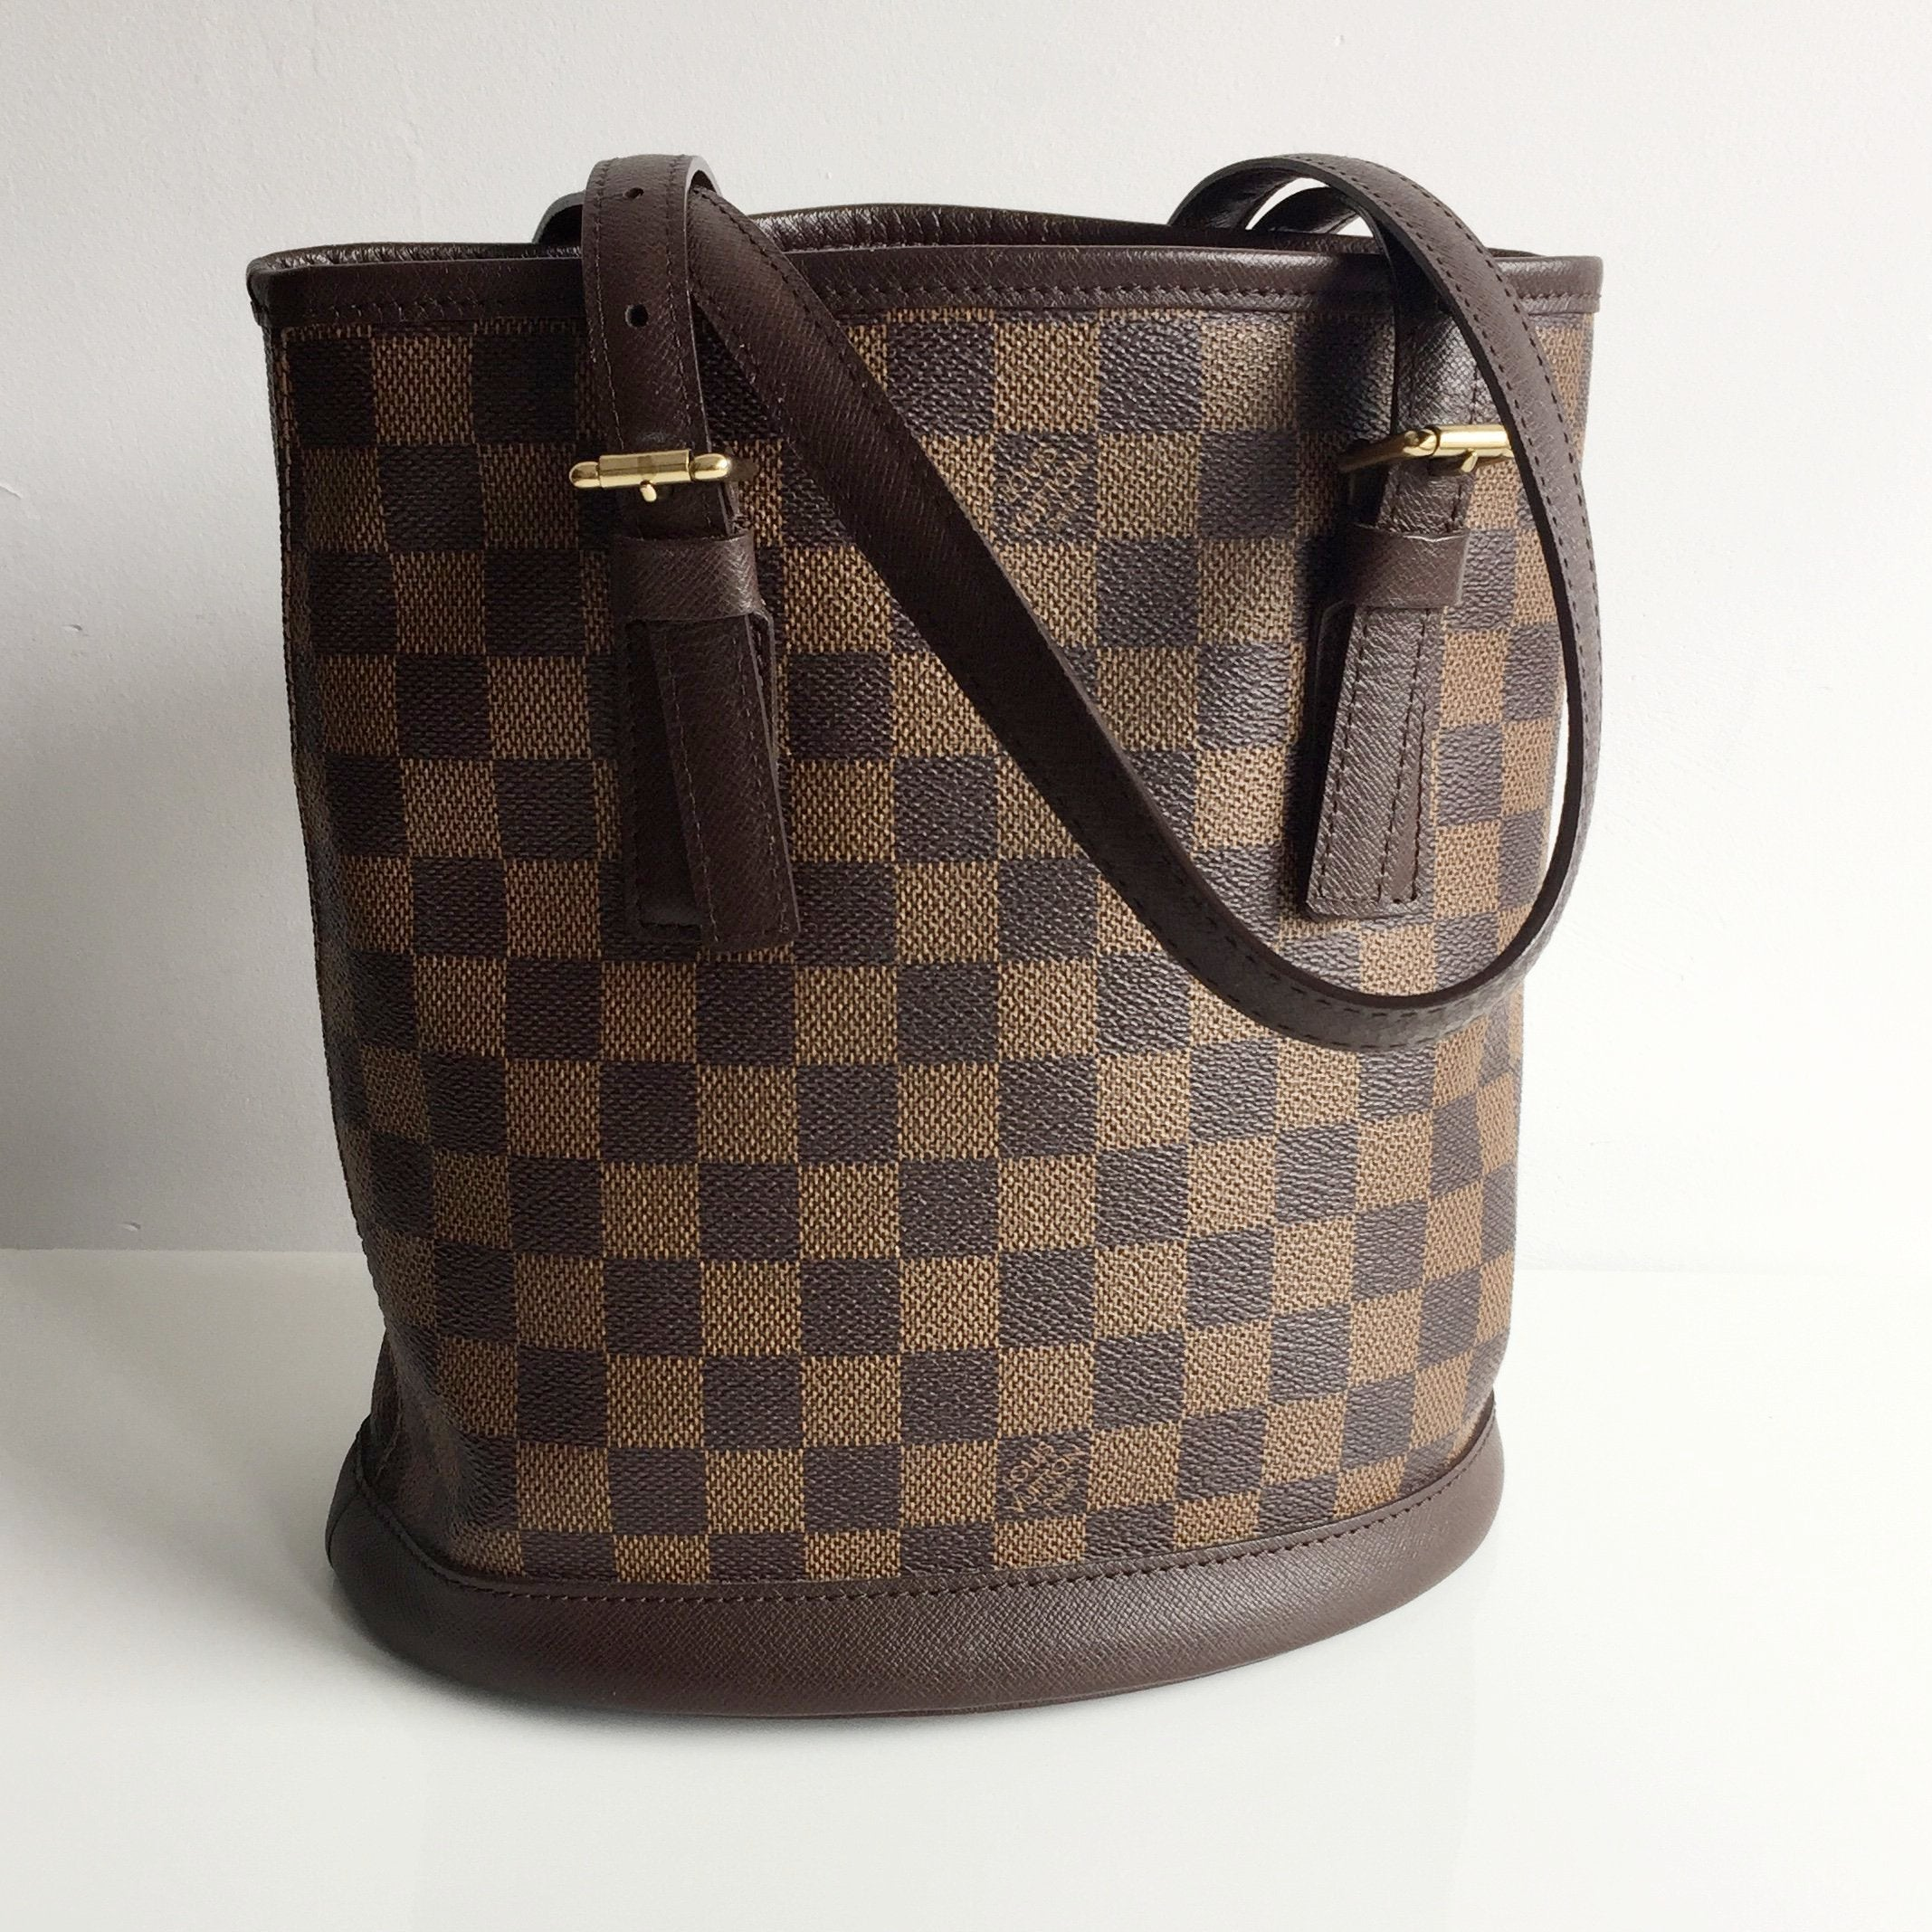 d358b85c2729 Authentic LOUIS VUITTON Damier Ebene Marais Bucket Bag – Valamode